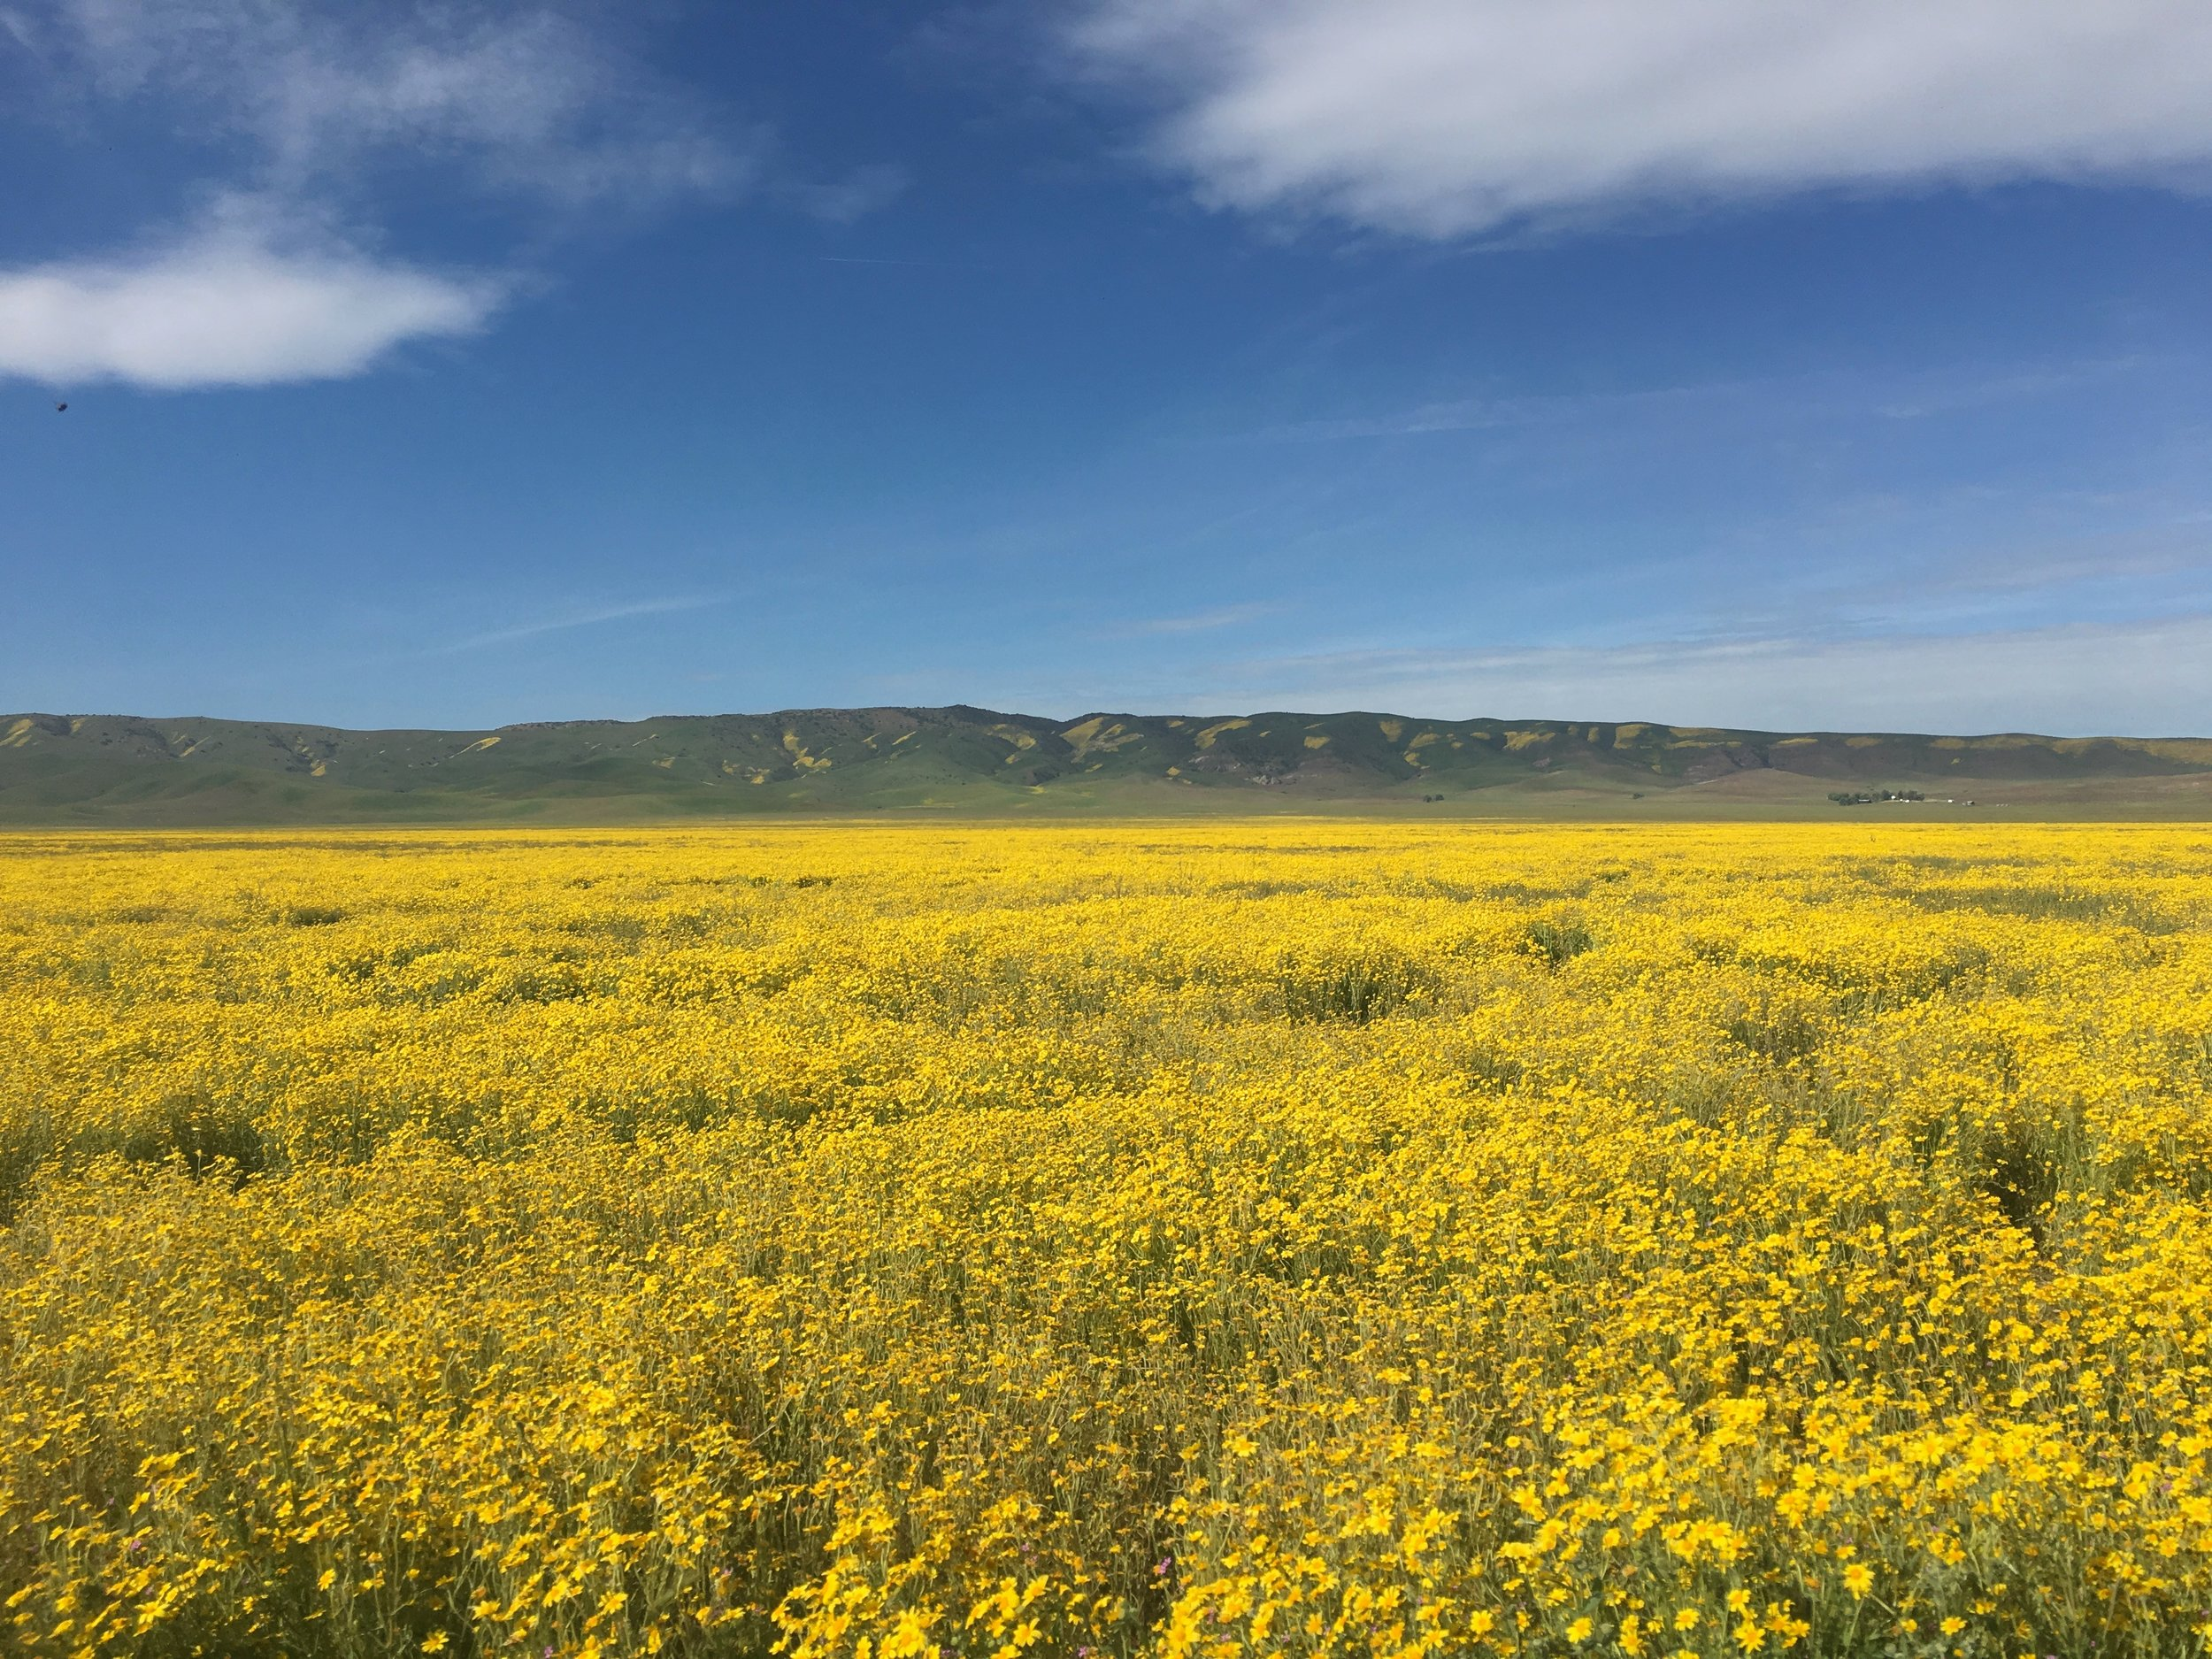 One week before the call, I saw the most amazing flower display at Carrizo Plain National Monument